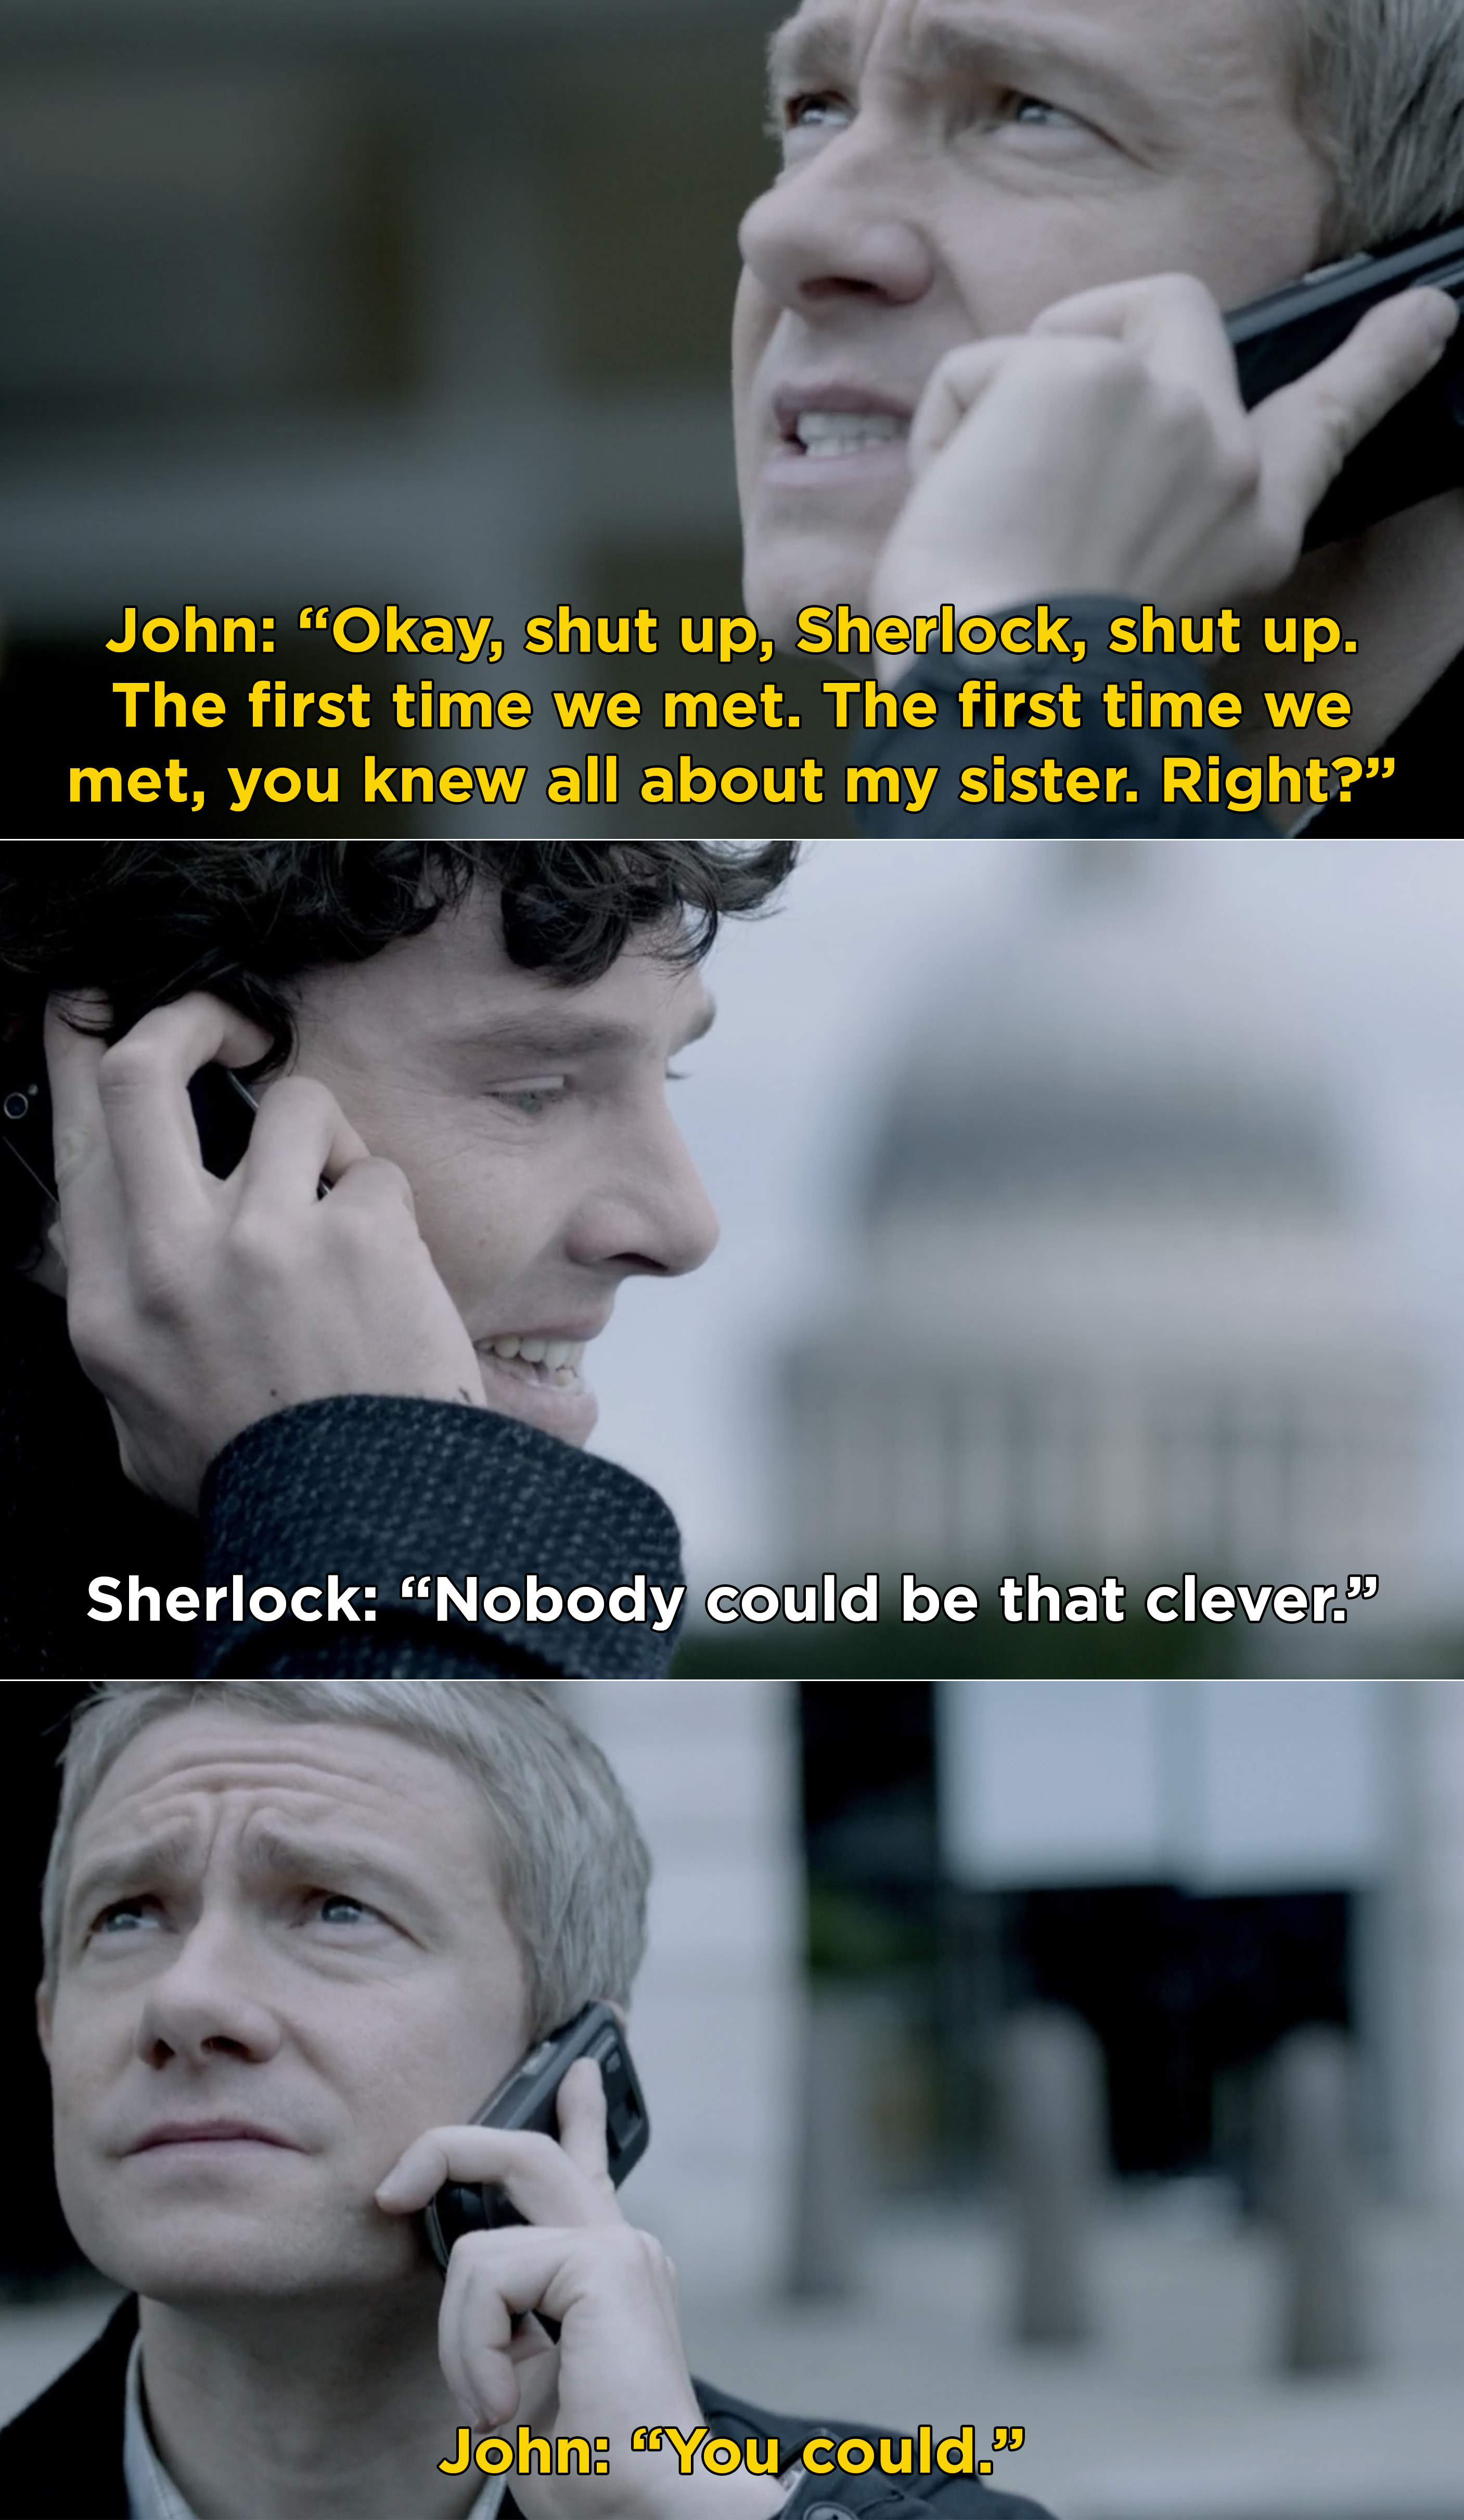 Sherlock talking to John on the phone and saying he was so clever the first time they met